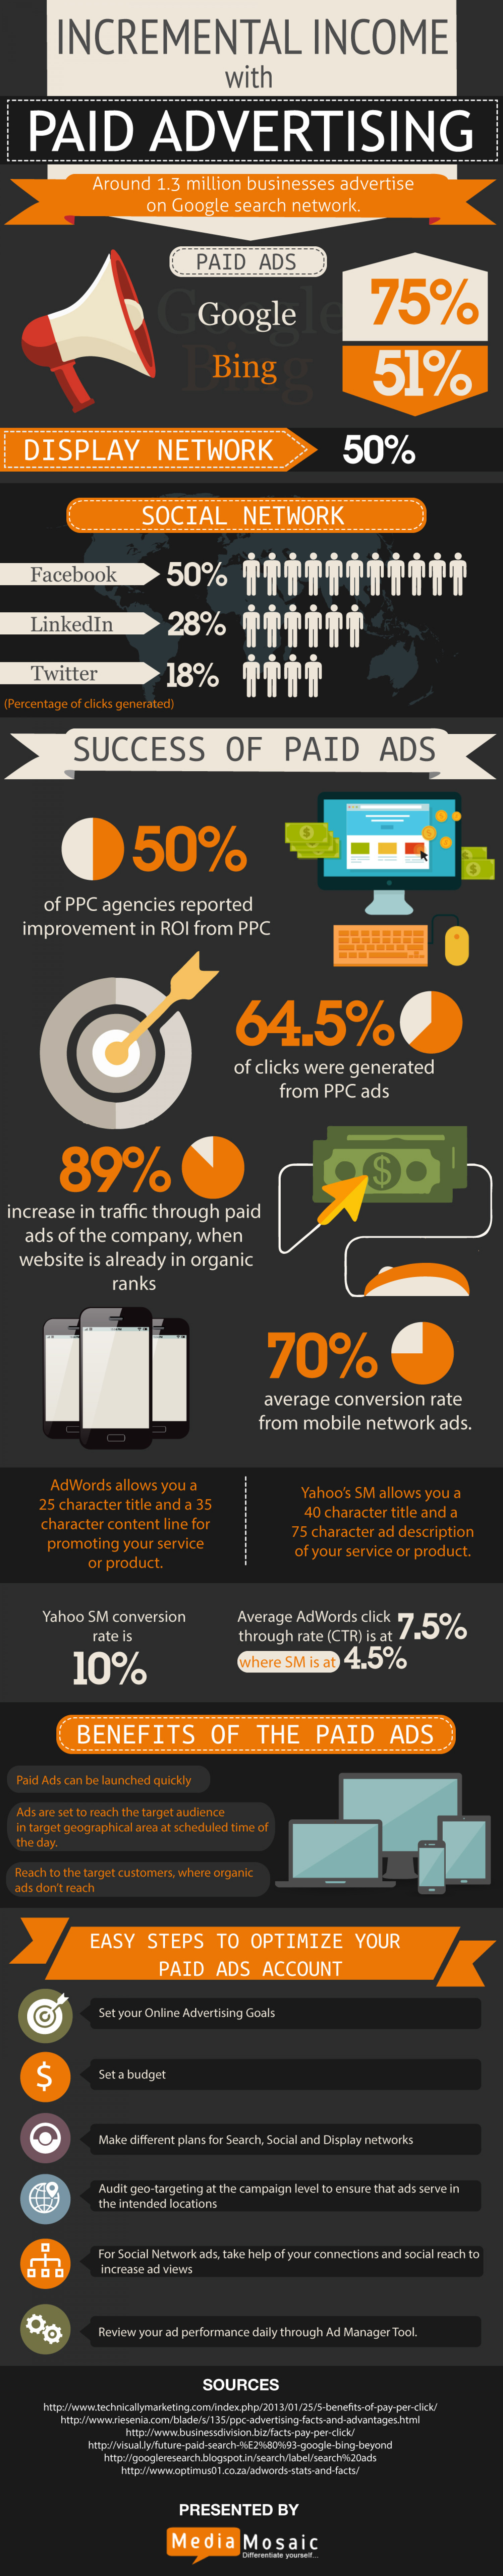 Importance and Benefits of Paid marketing Infographic